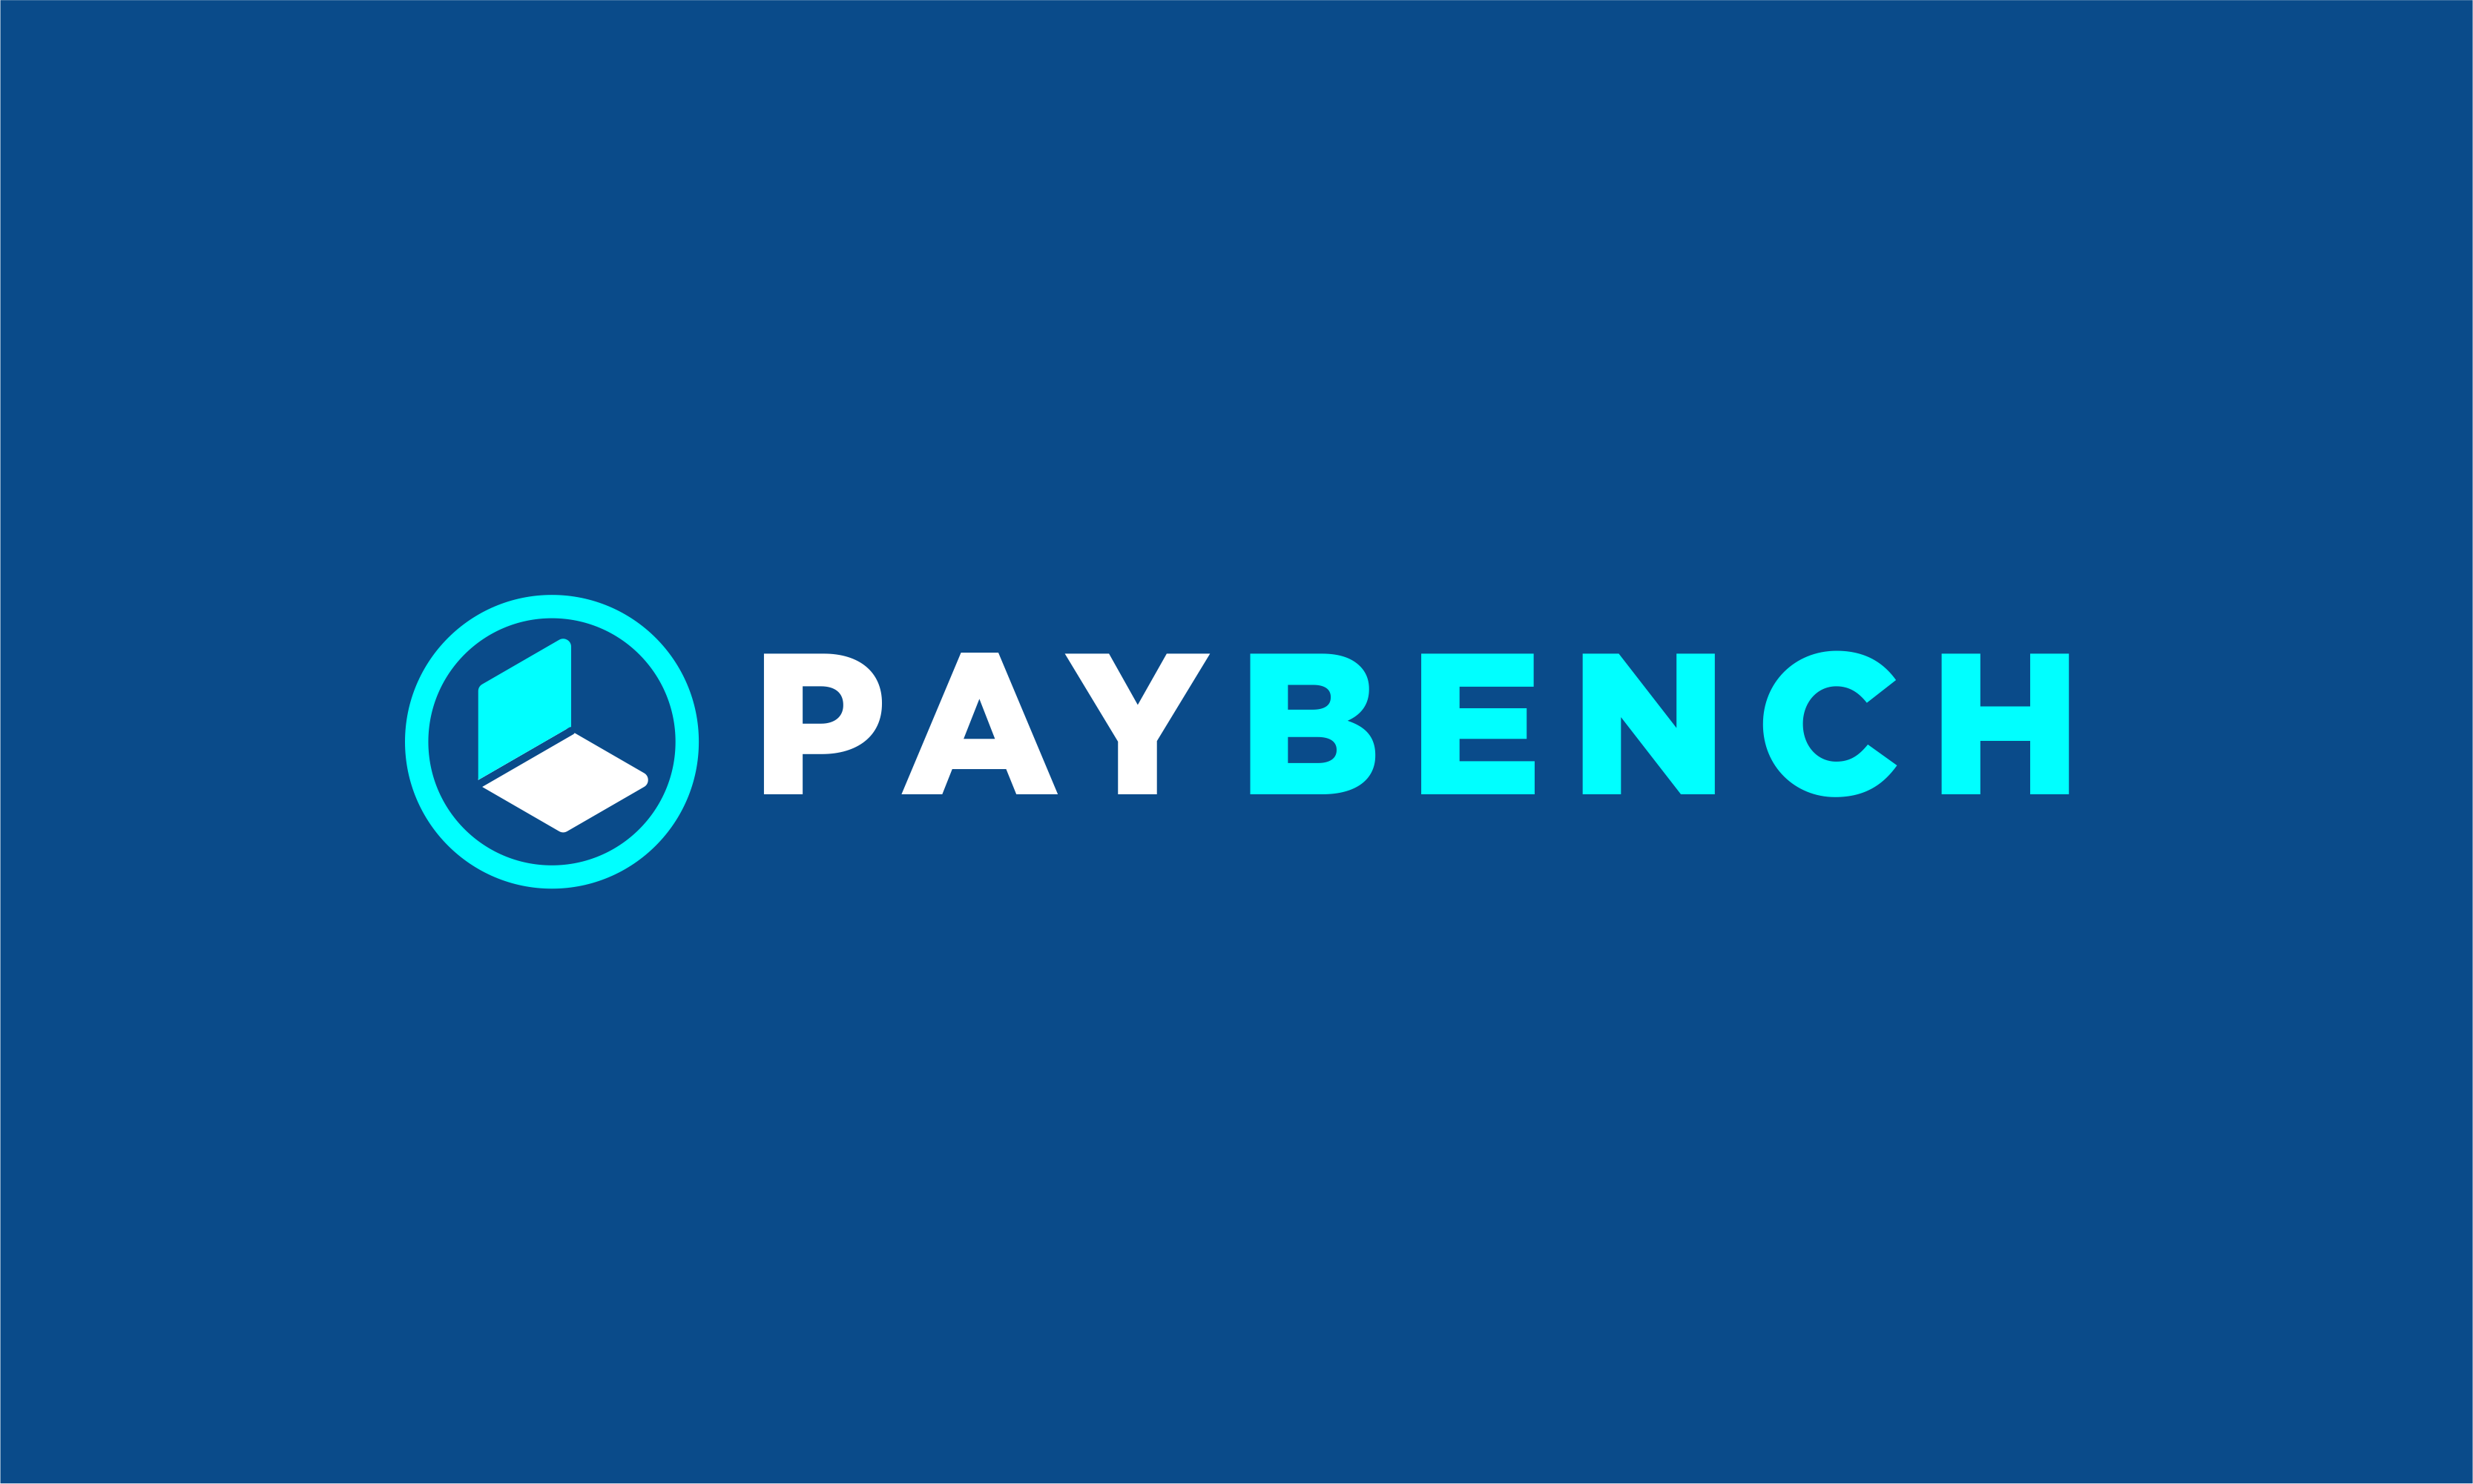 Paybench